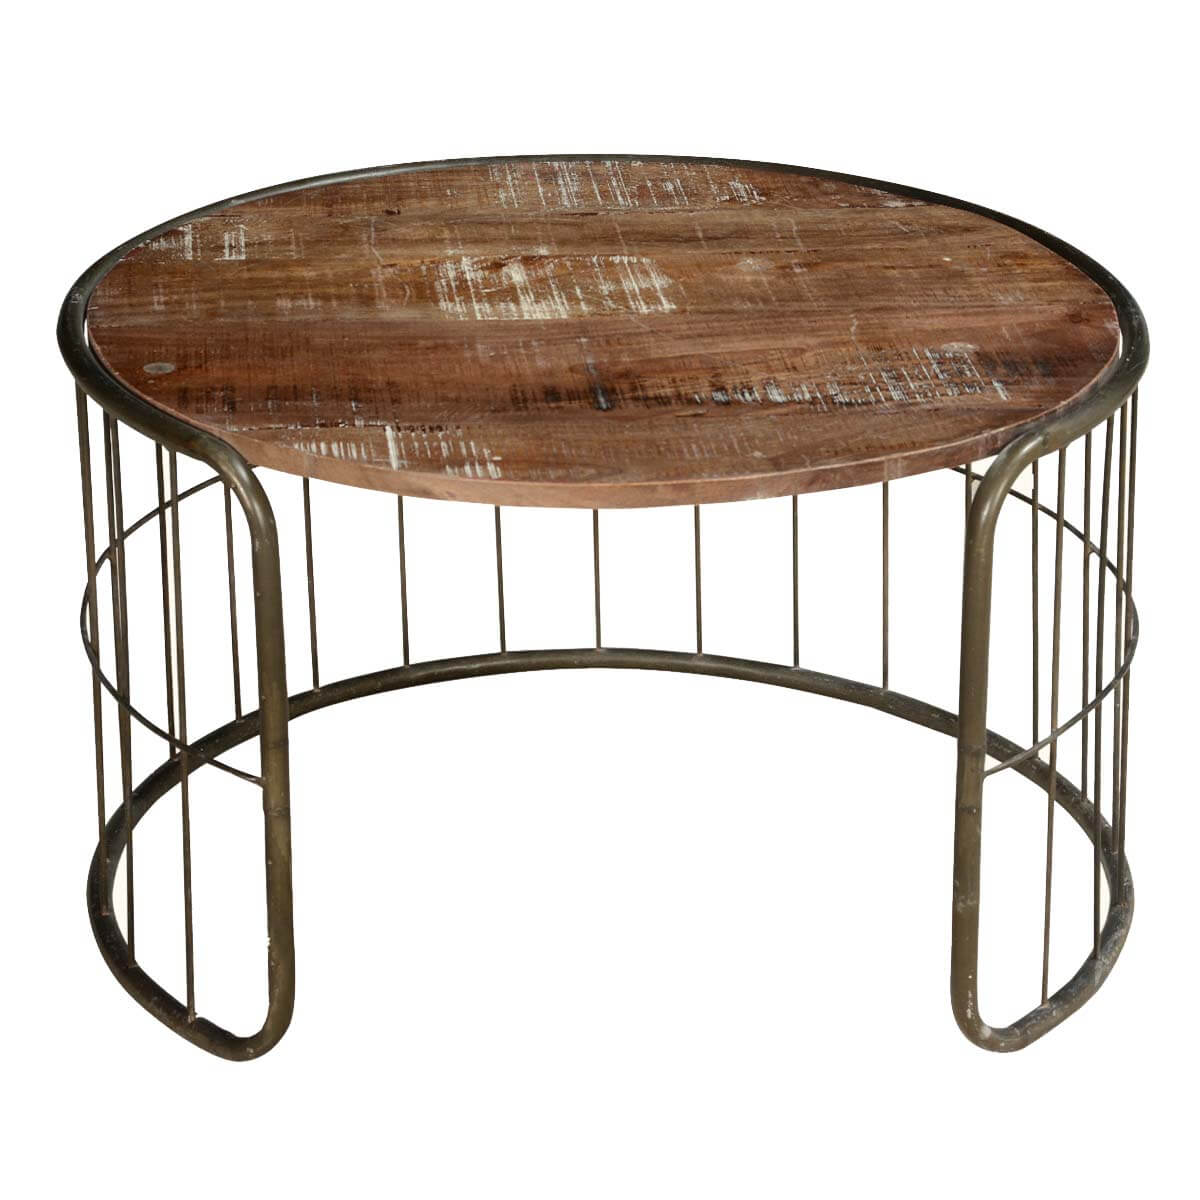 On the fence mango wood iron rustic 30 round coffee table Rustic round coffee table